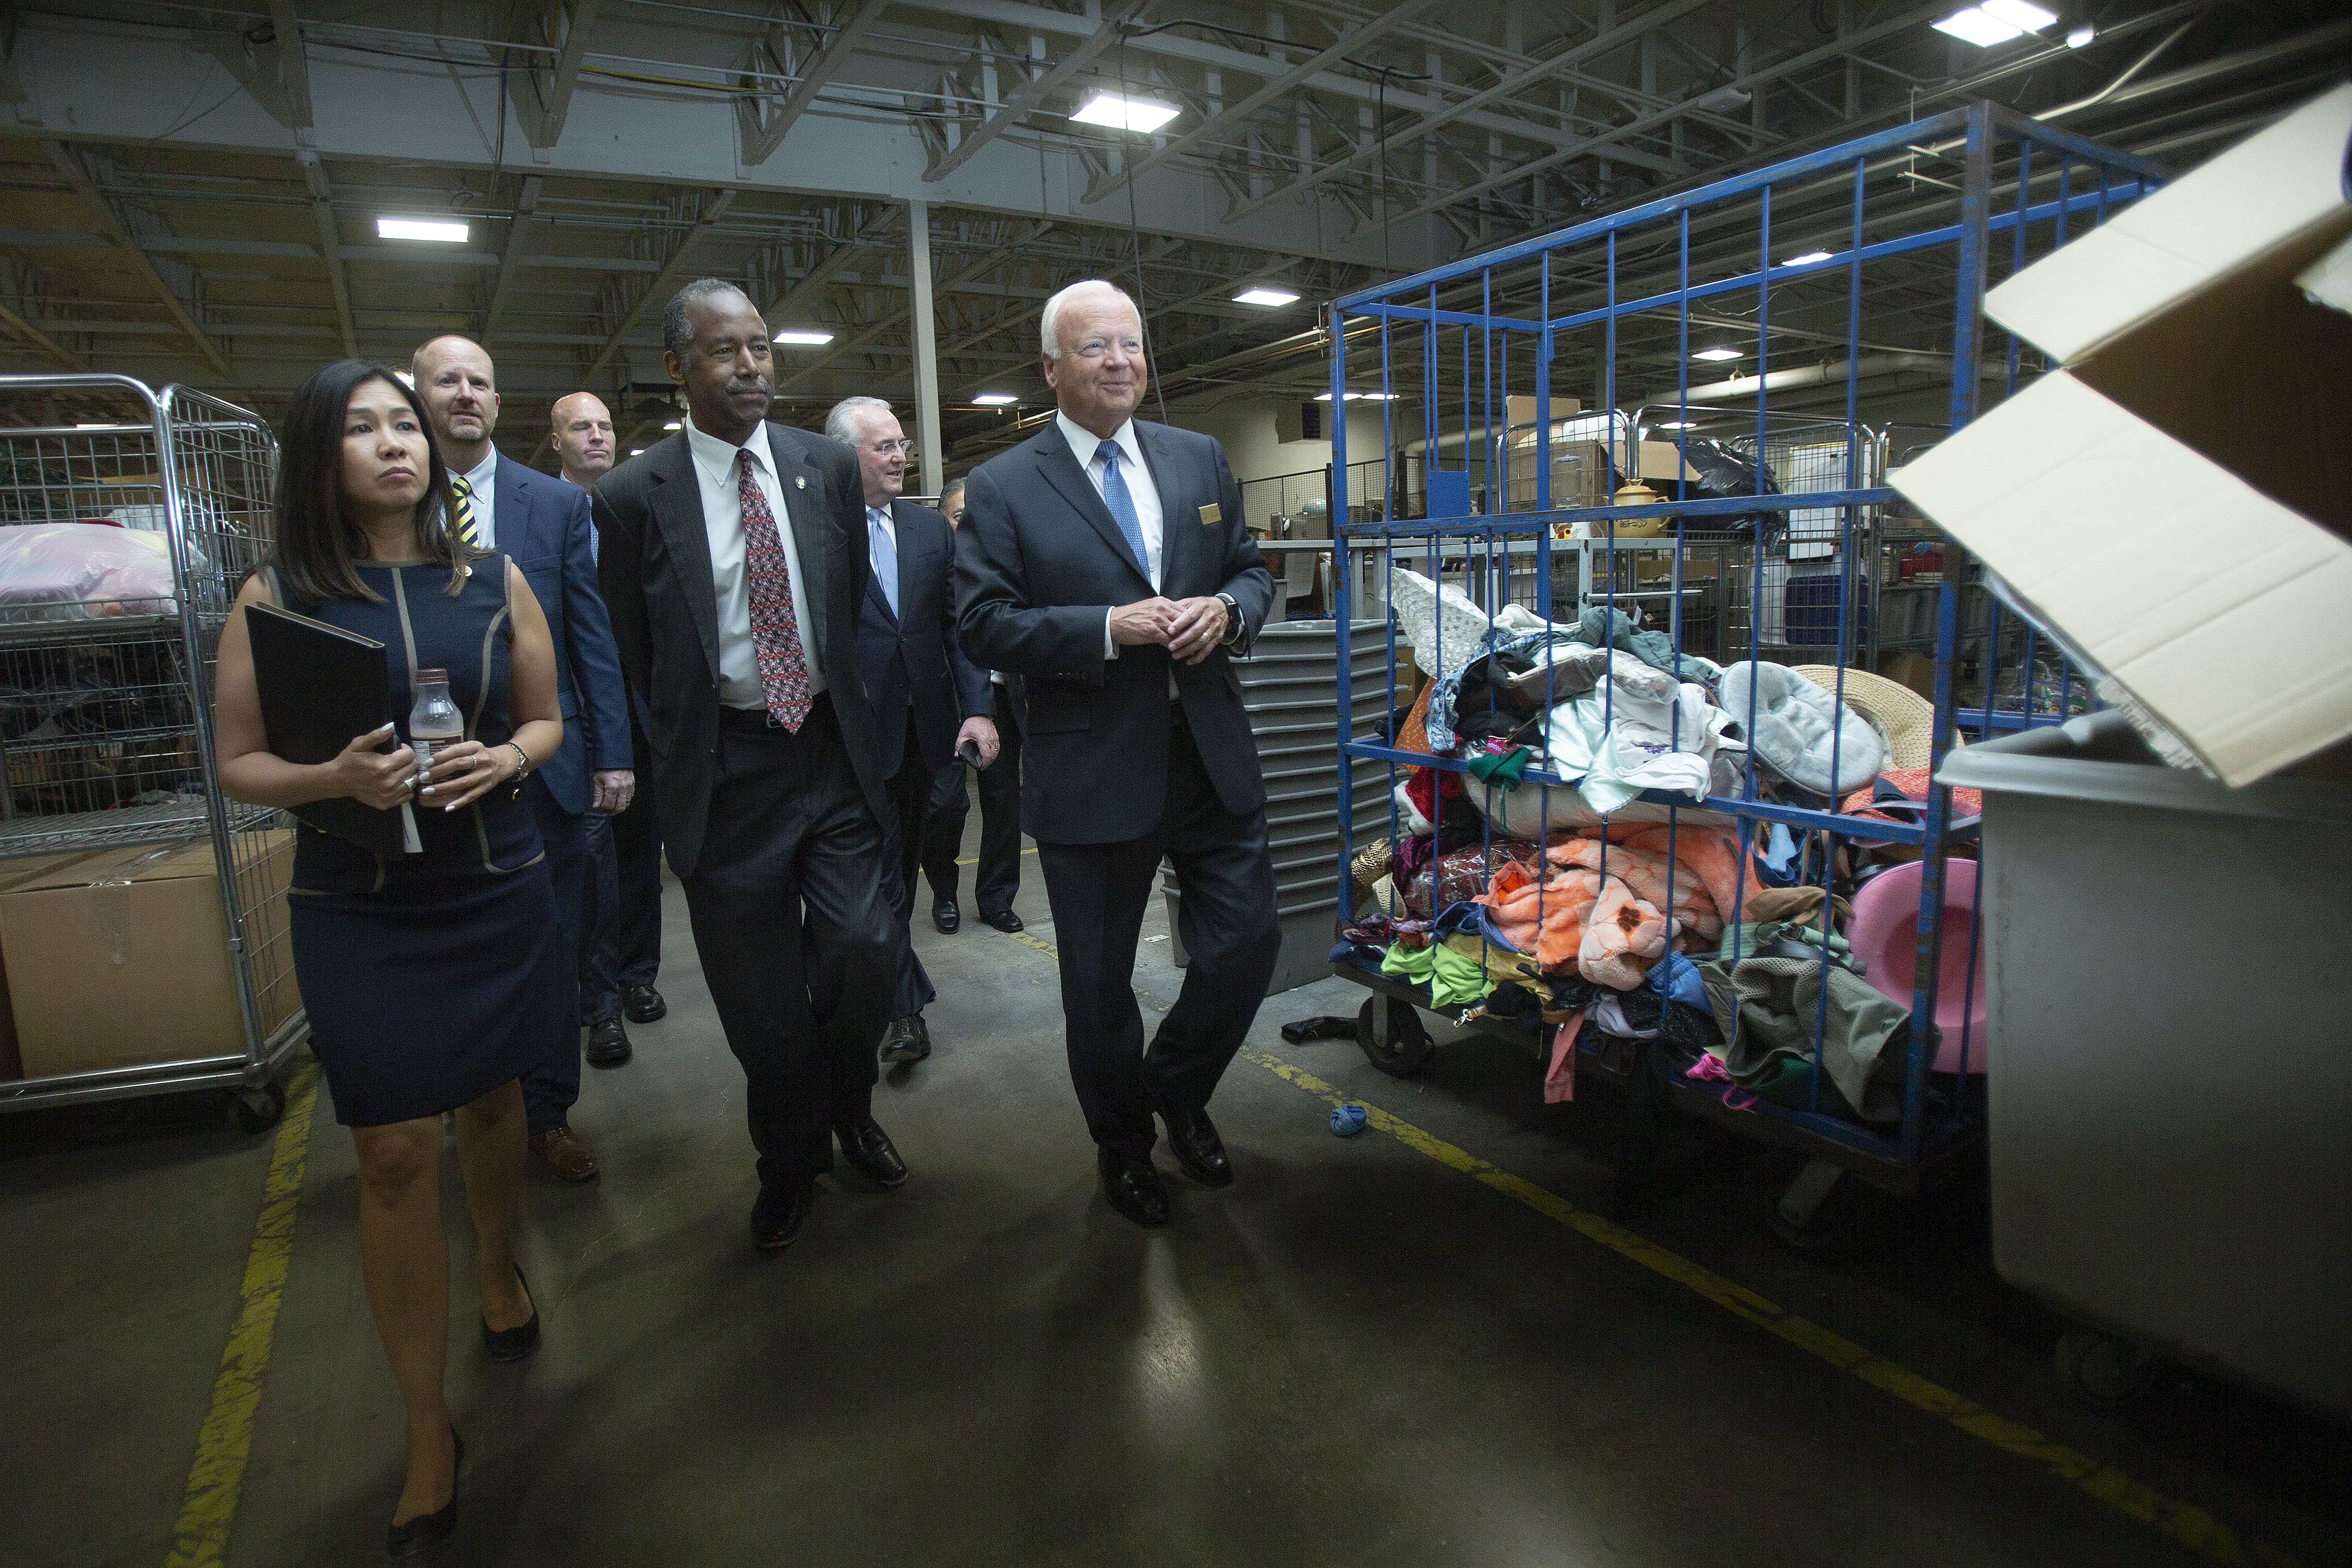 Elder Kent F. Richards, right, walks Dr. Ben Carson, HUD secretary, center, through a Deseret Industries sorting area during a Welfare Square tour Thursday, July 11, 2019, in Salt Lake City.